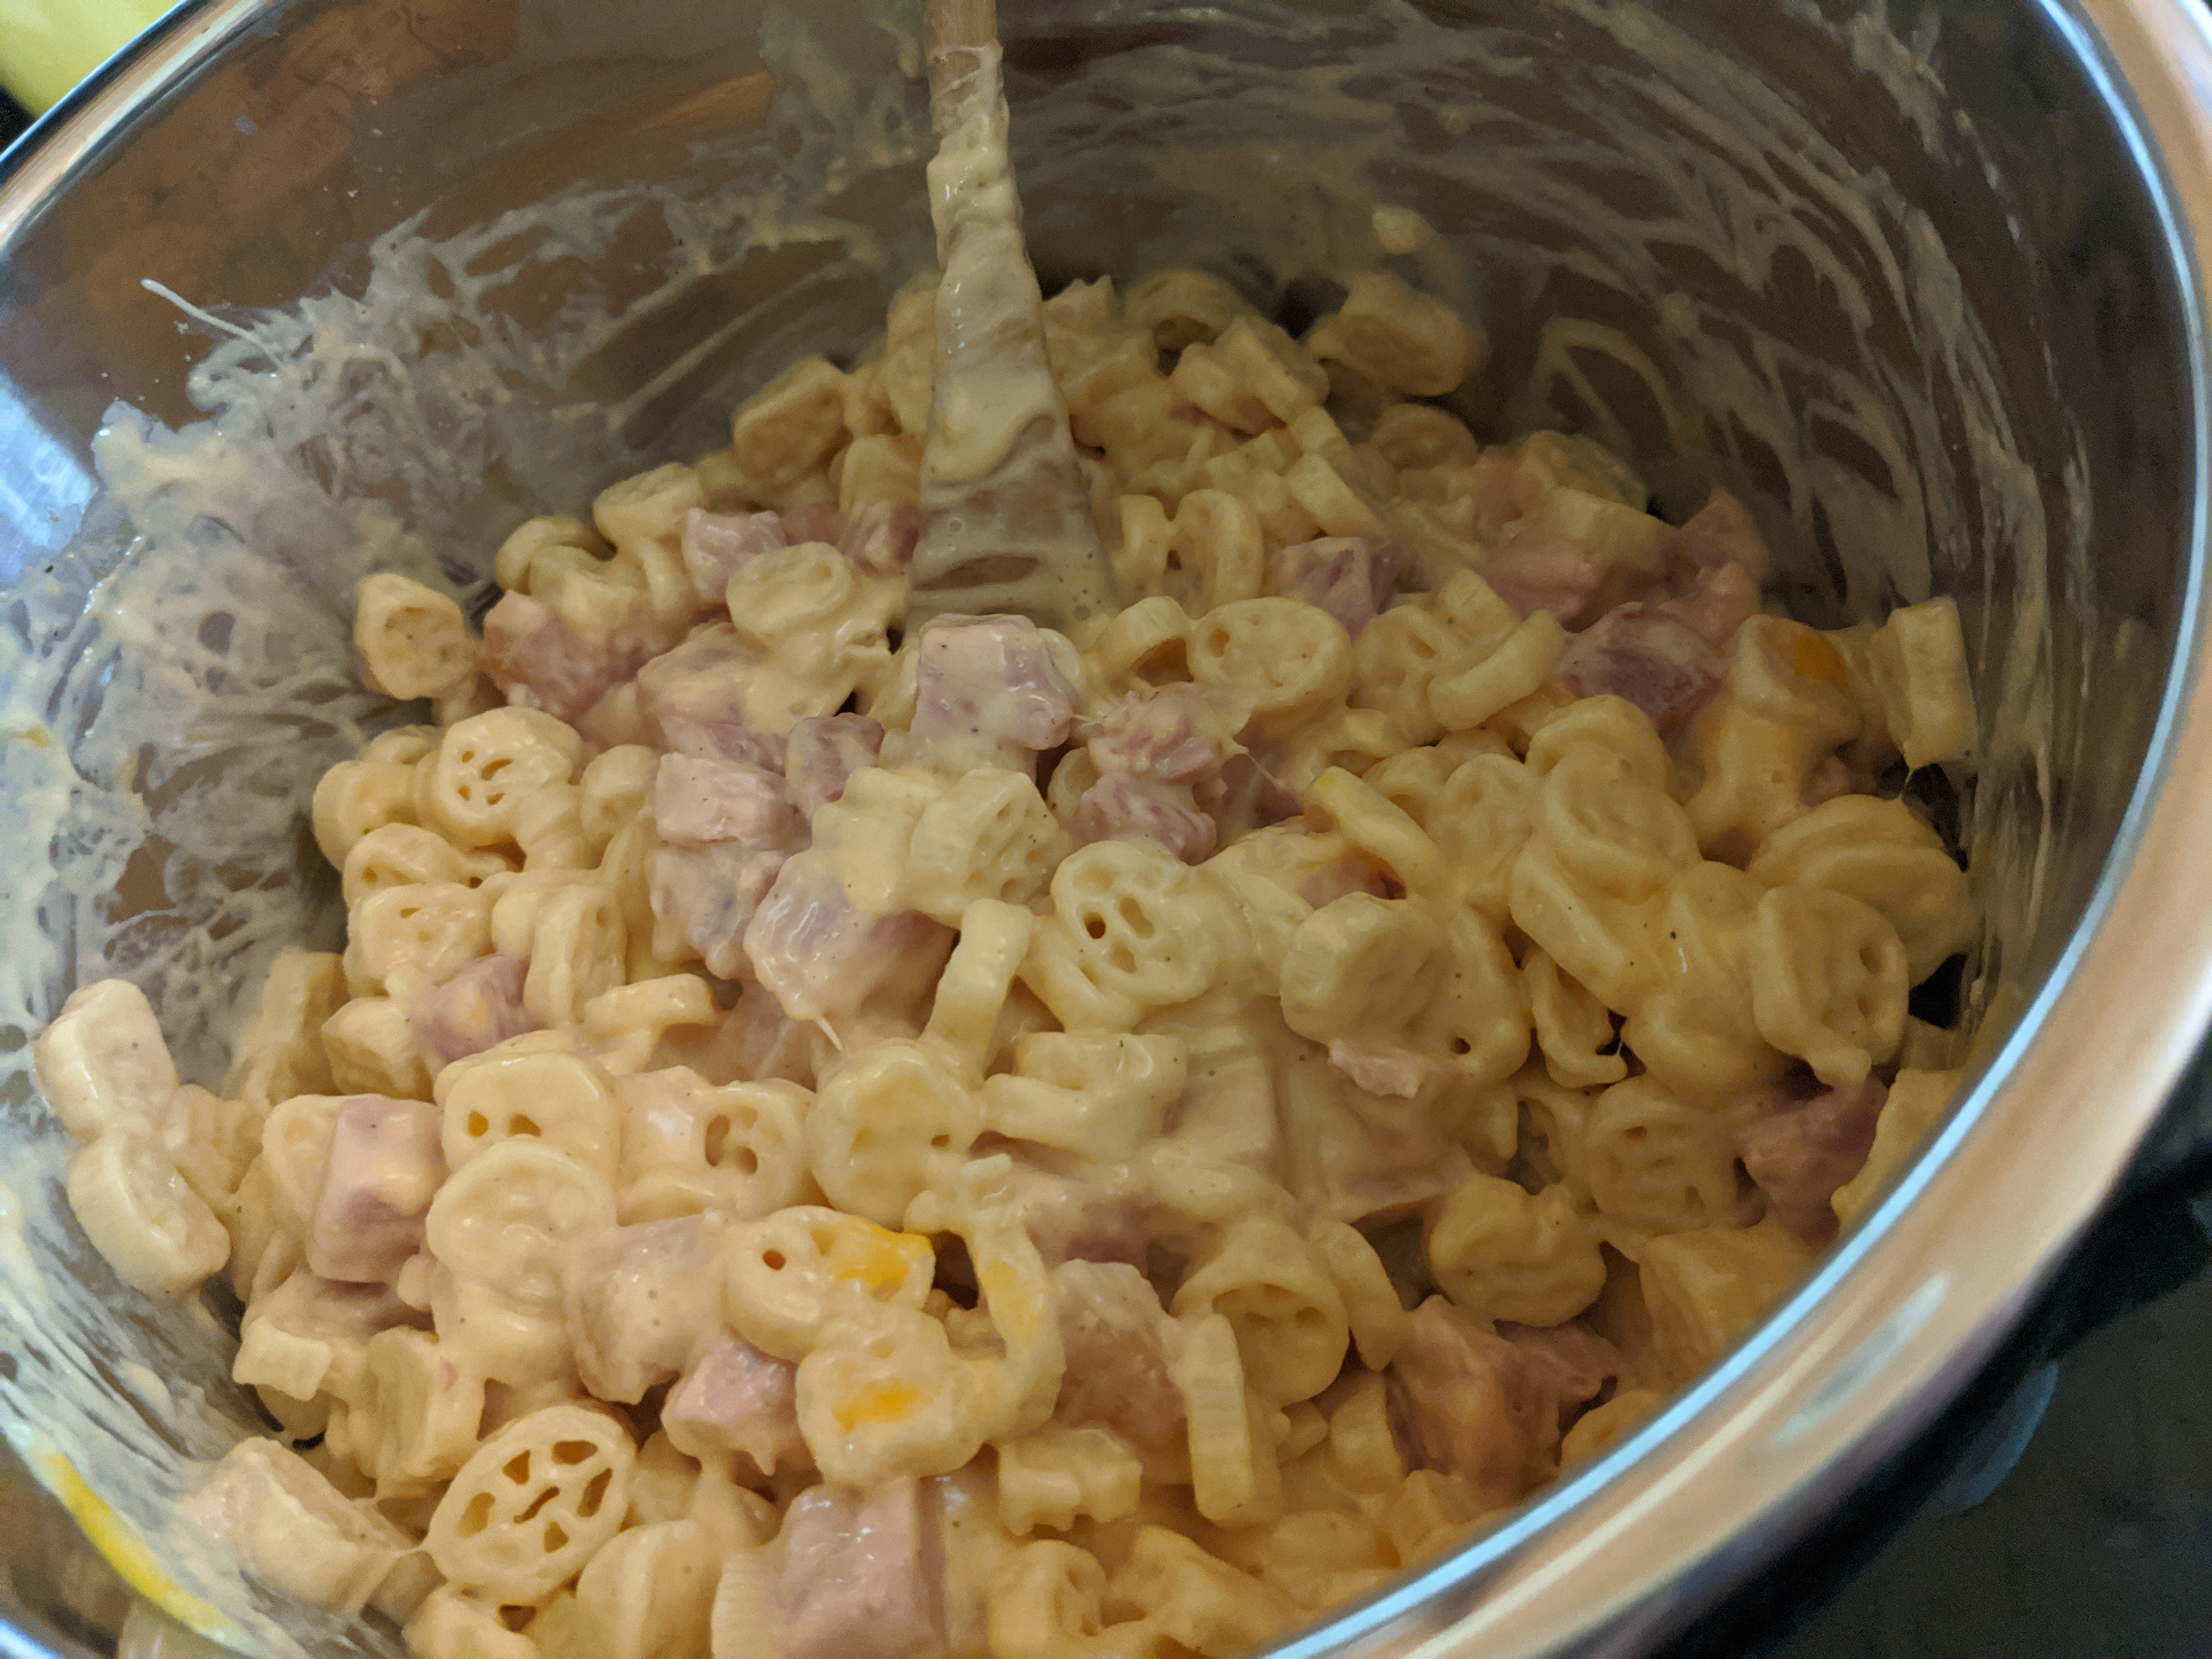 Budget friendly ham and cheese pasta made in the pampered chef quick cooker